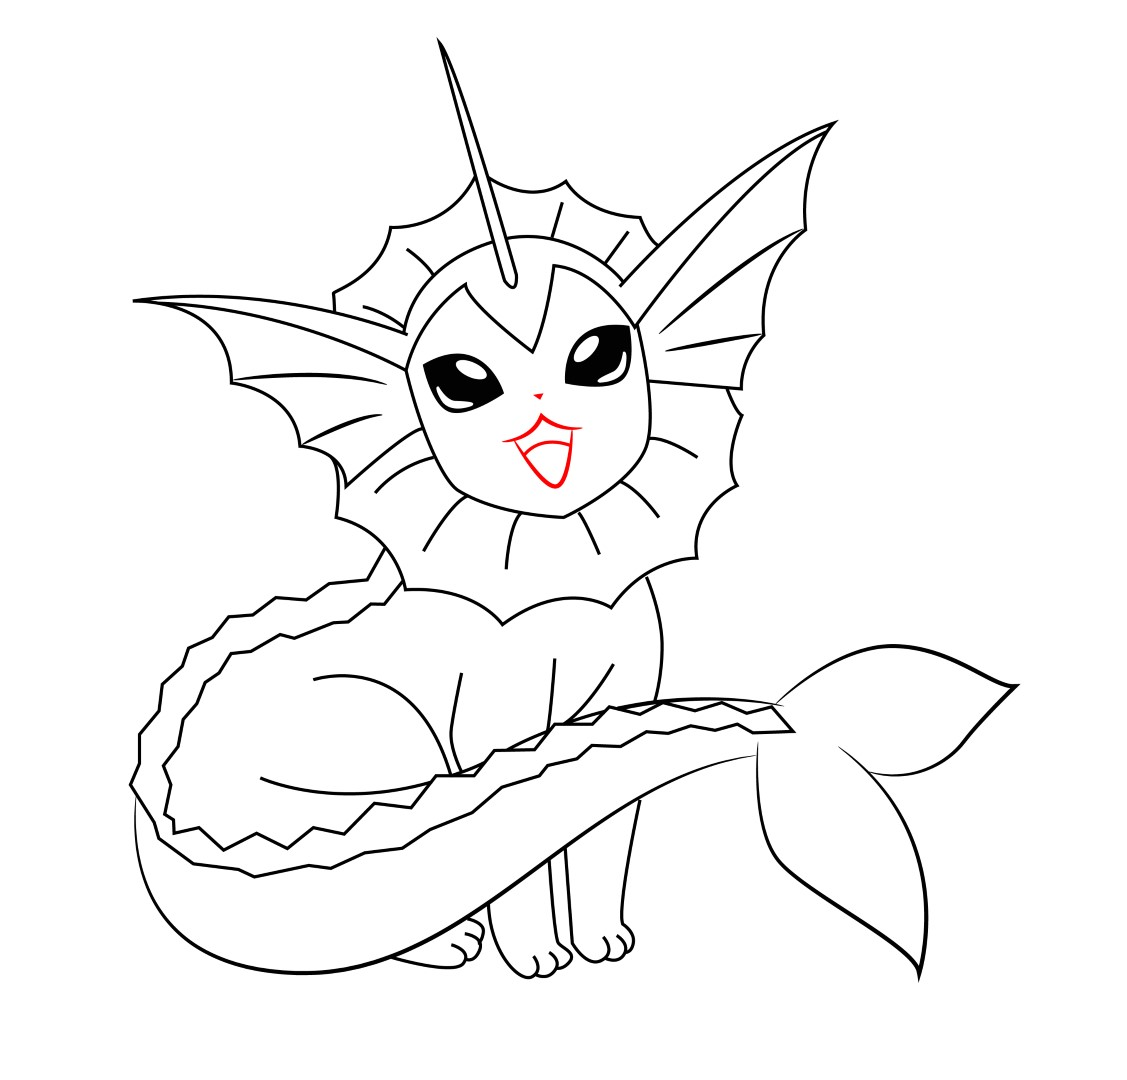 pokemon vaporeon coloring pages - photo#31